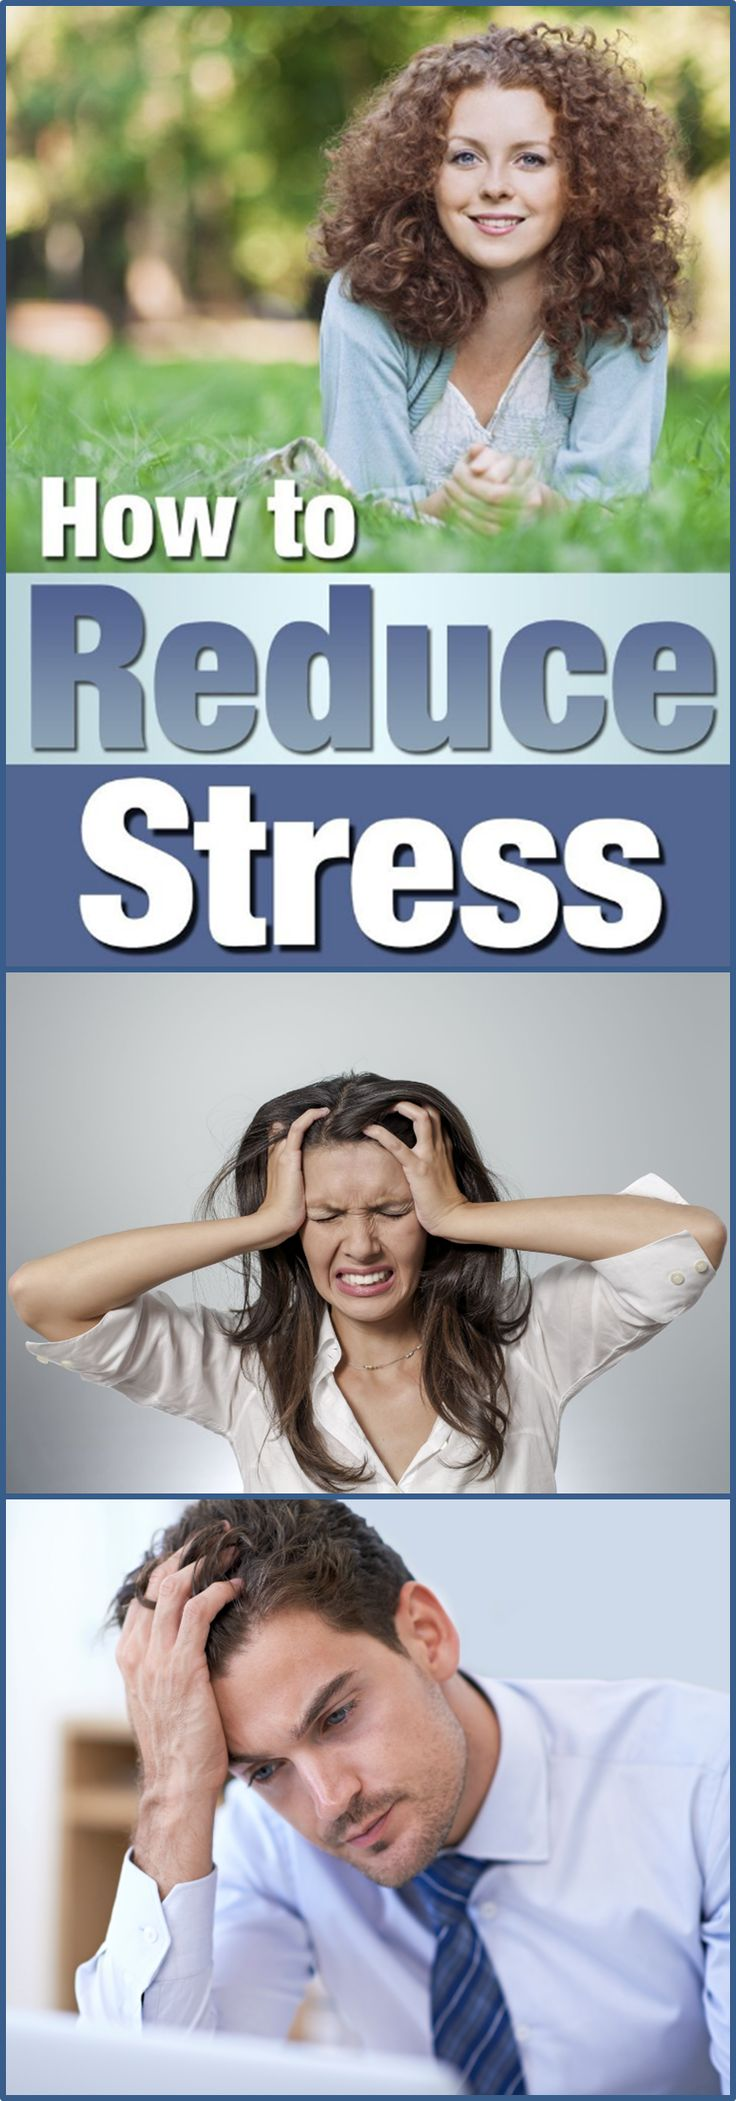 We get over-stressed now and then. It's a natural response under certain conditions. We need to be concern when our stress is getting out of hand and interfering with our lifestyle. What problems can too much stress cause? · High Blood Pressure · Colds and the Flu · Allergies · Diabetes · Damage Relationships · General Bad Health...